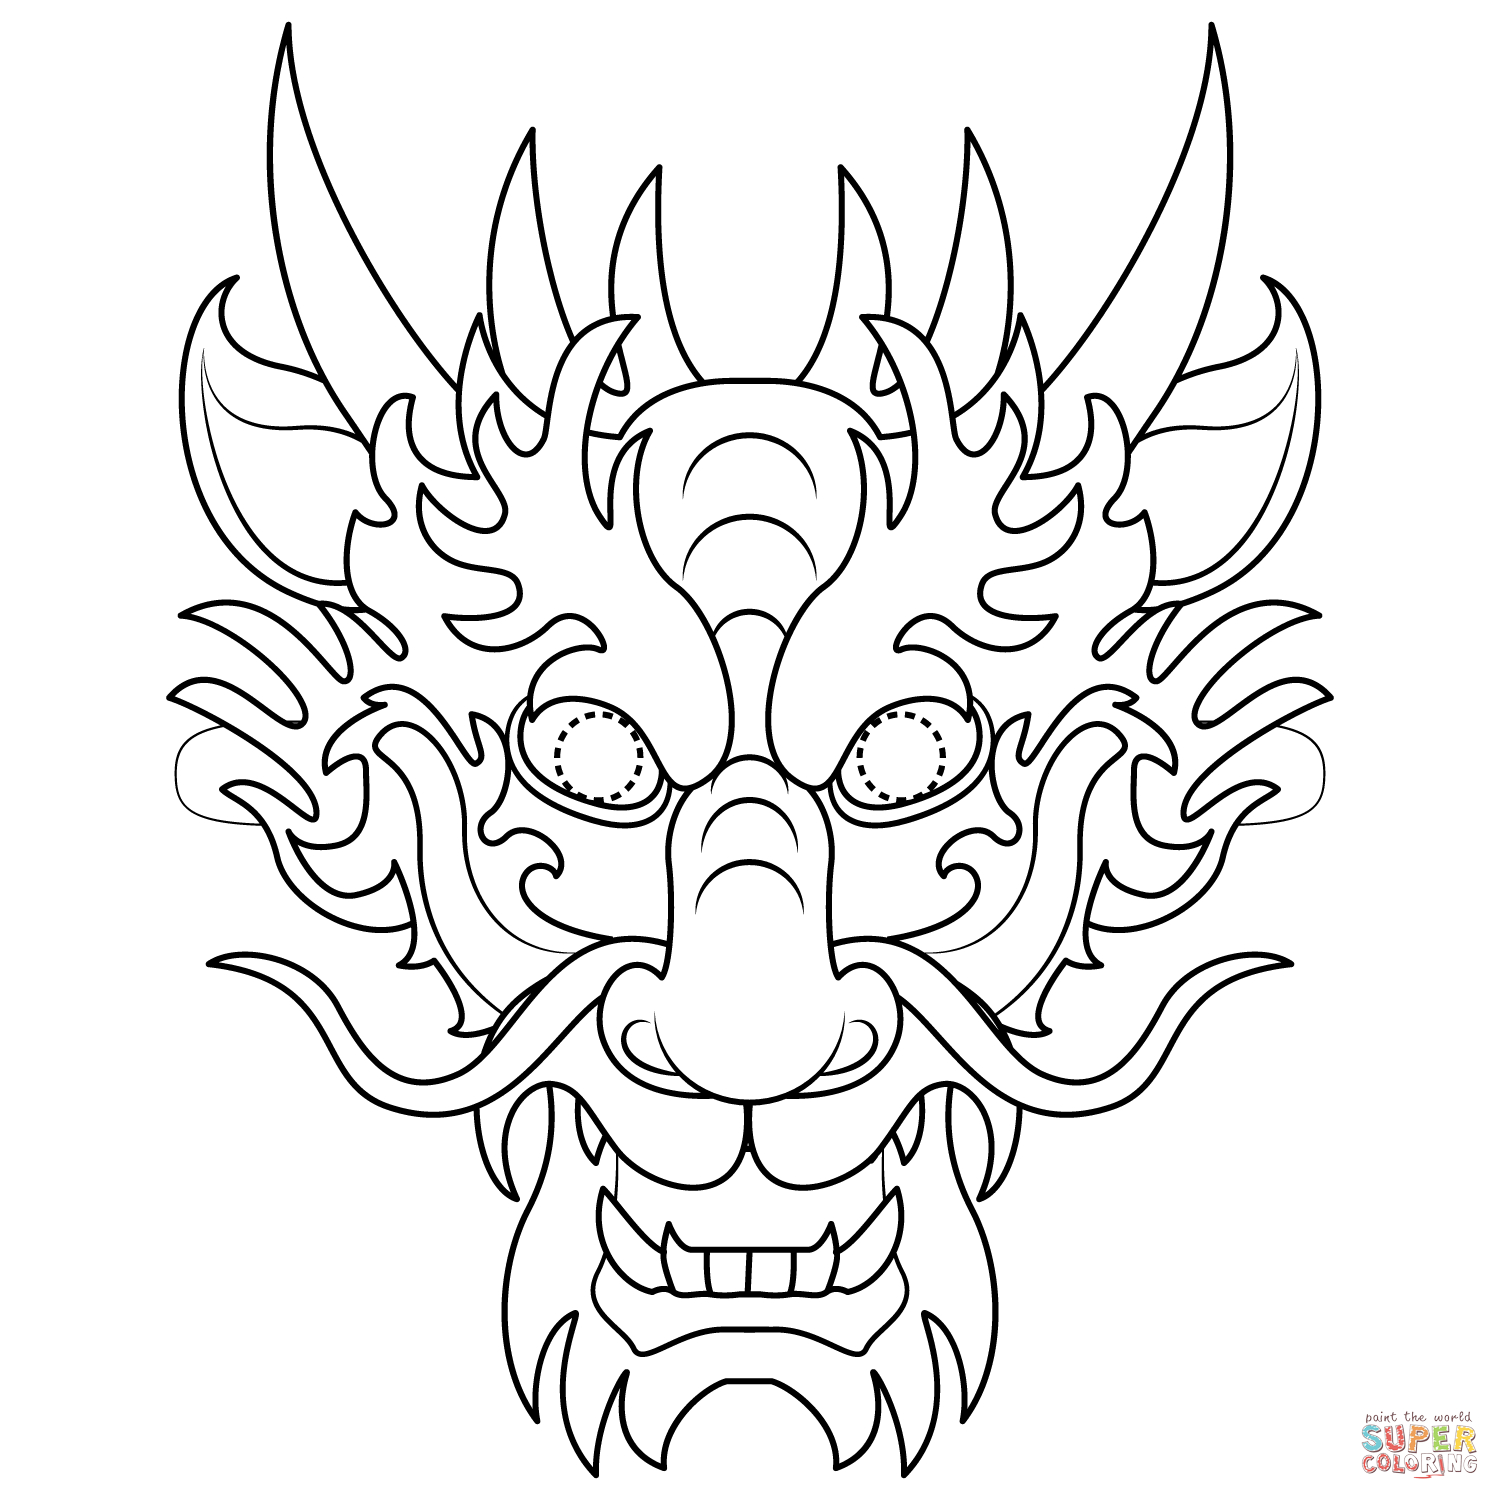 Chinese Dragon Mask Coloring Page | Free Printable Coloring Pages - Dragon Mask Printable Free